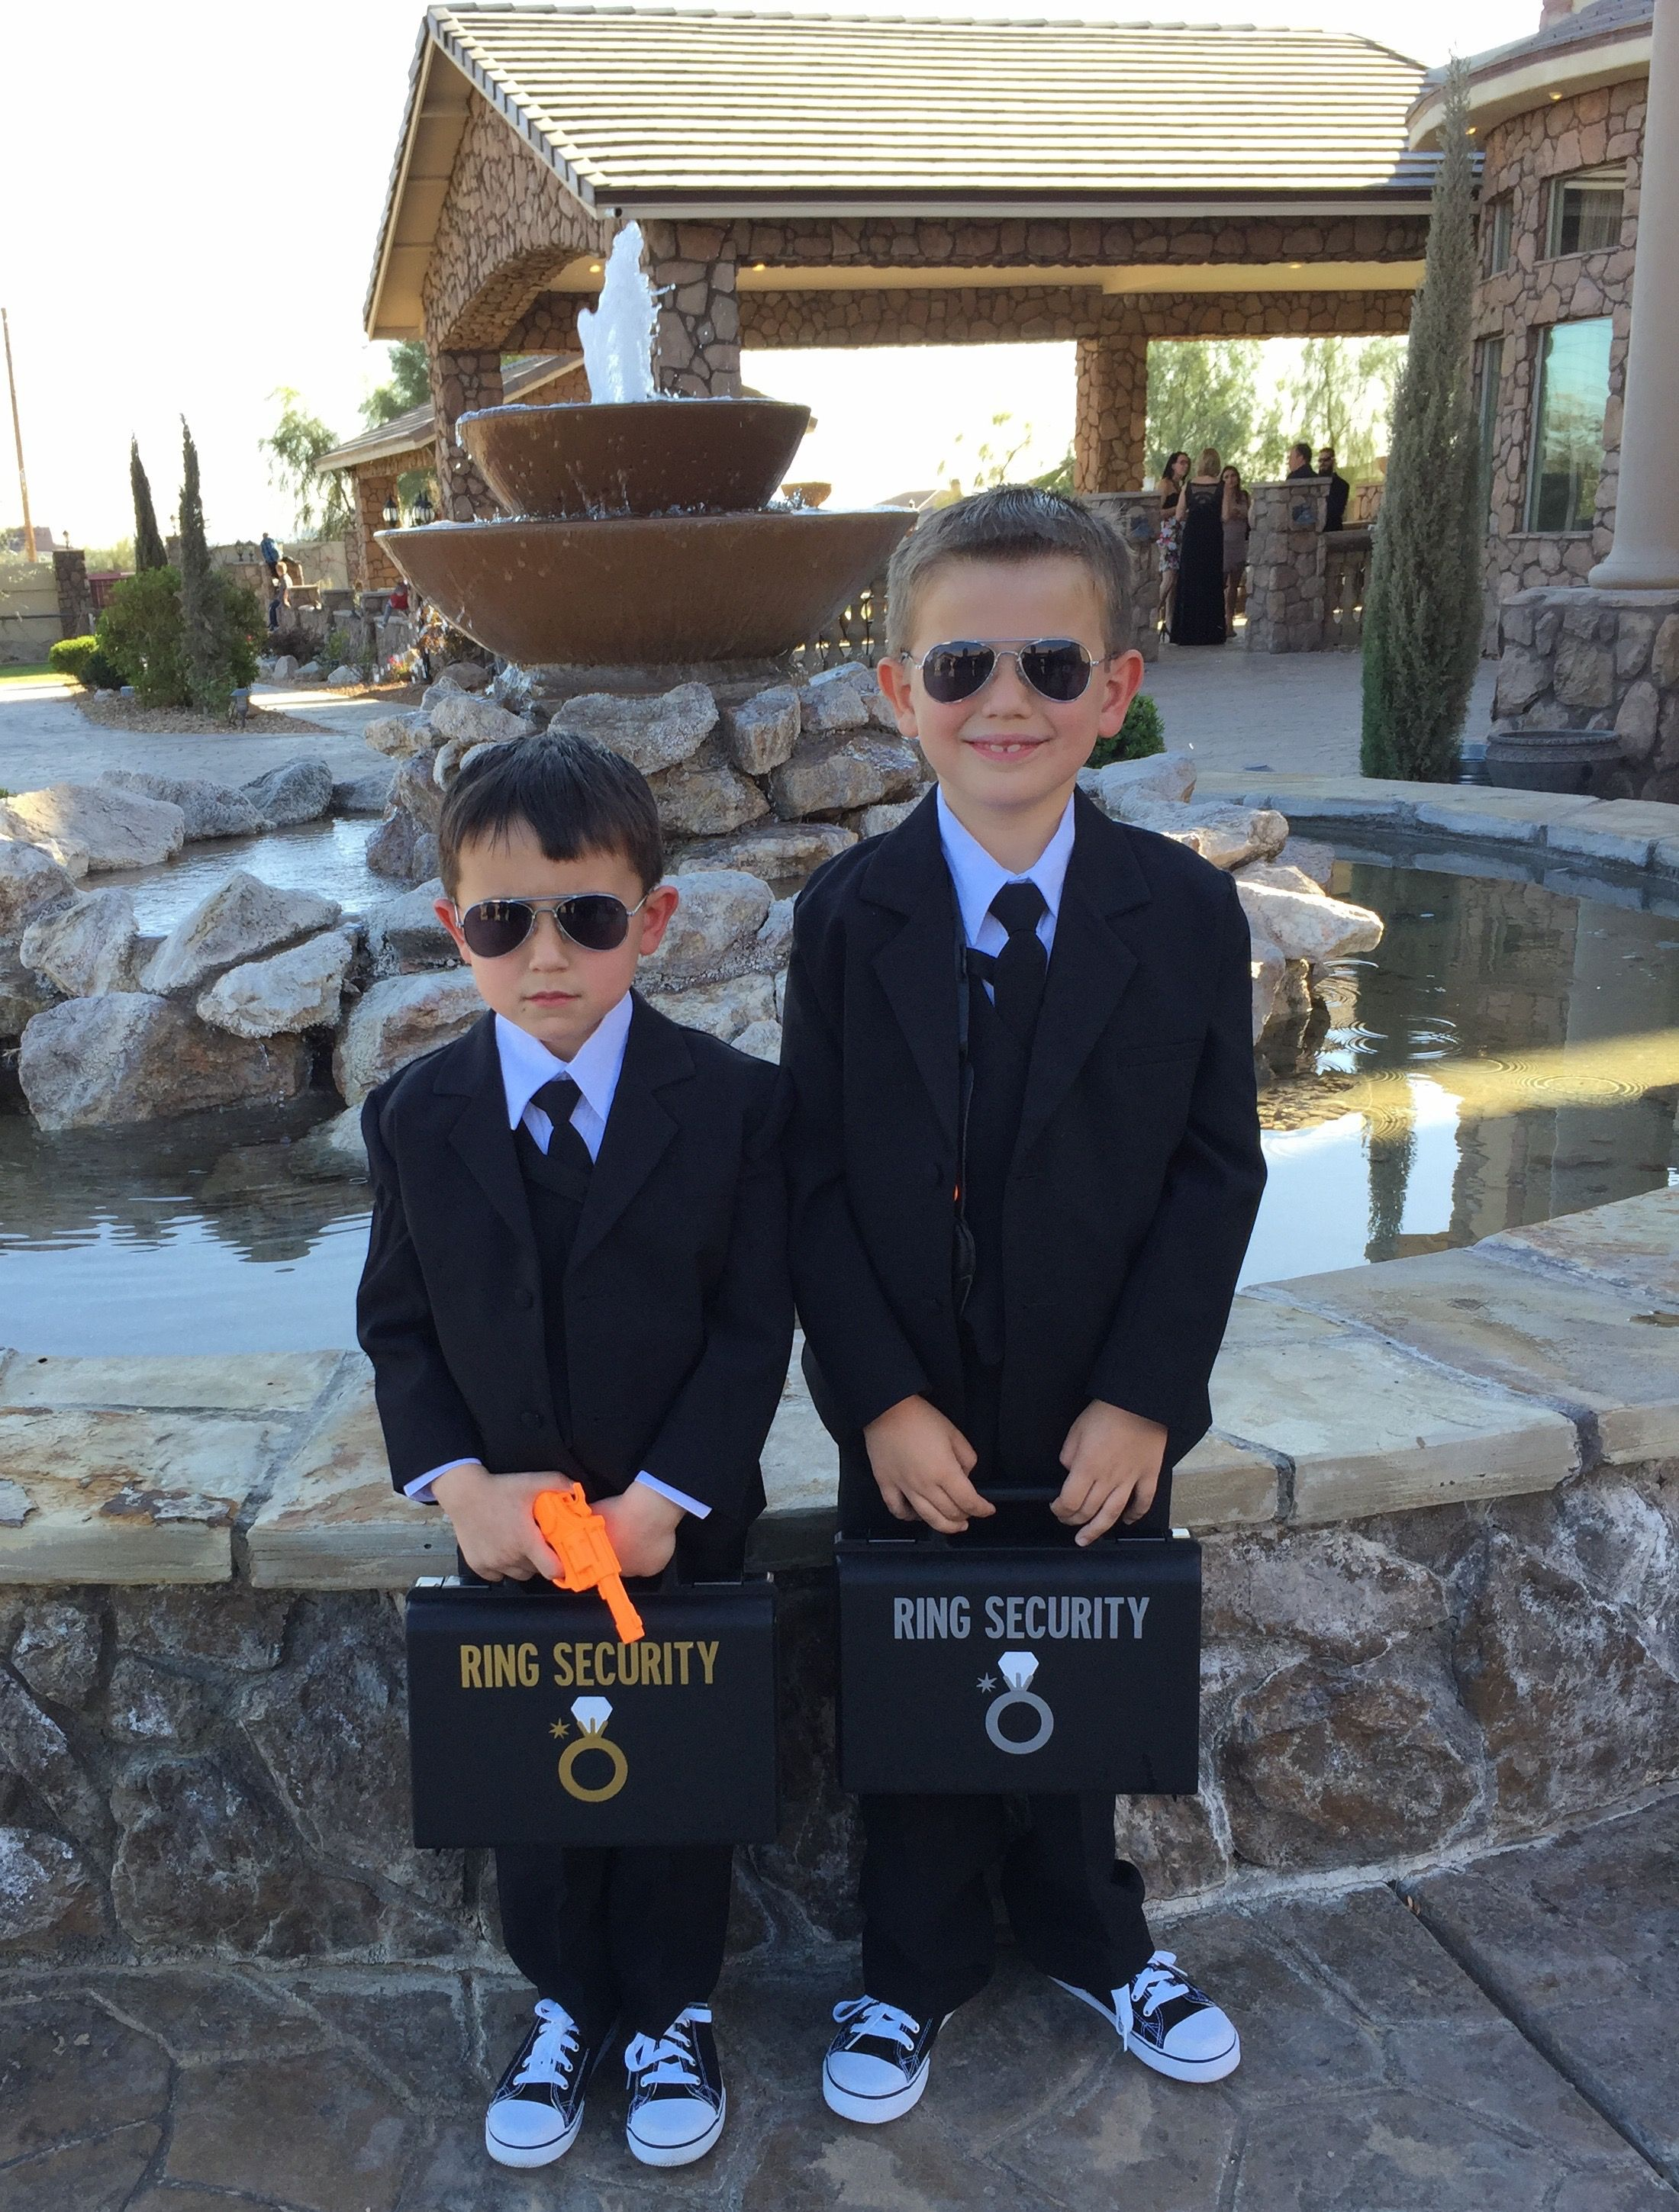 Heres a way to cast the Ring Bearers as Ring Security Wedding